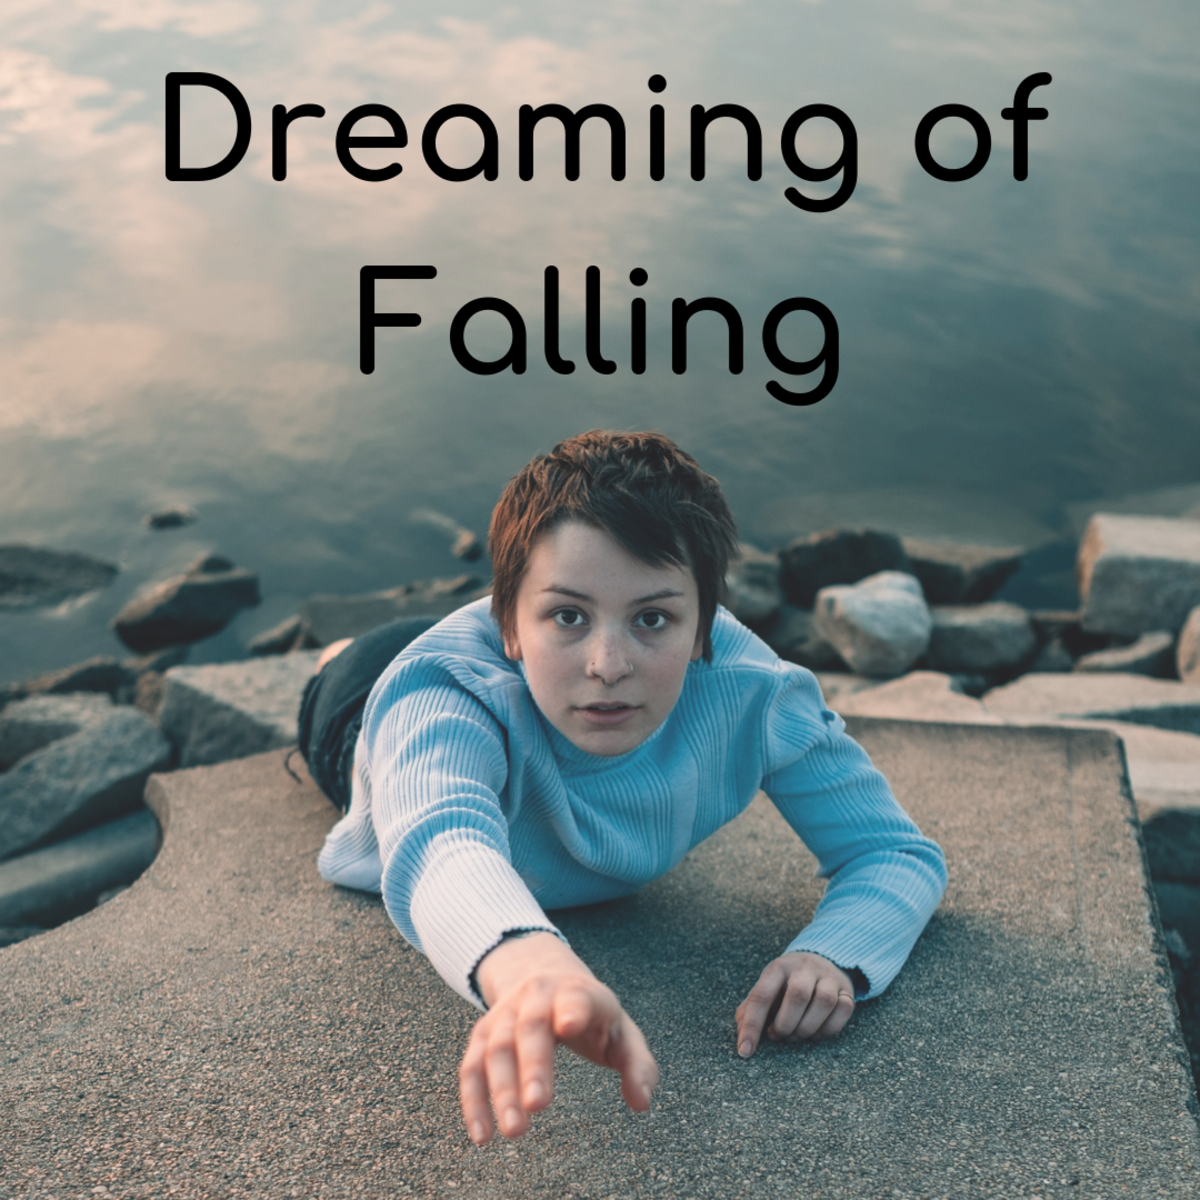 Dreaming I'm Falling: Meaning and Dream Symbolism Explained